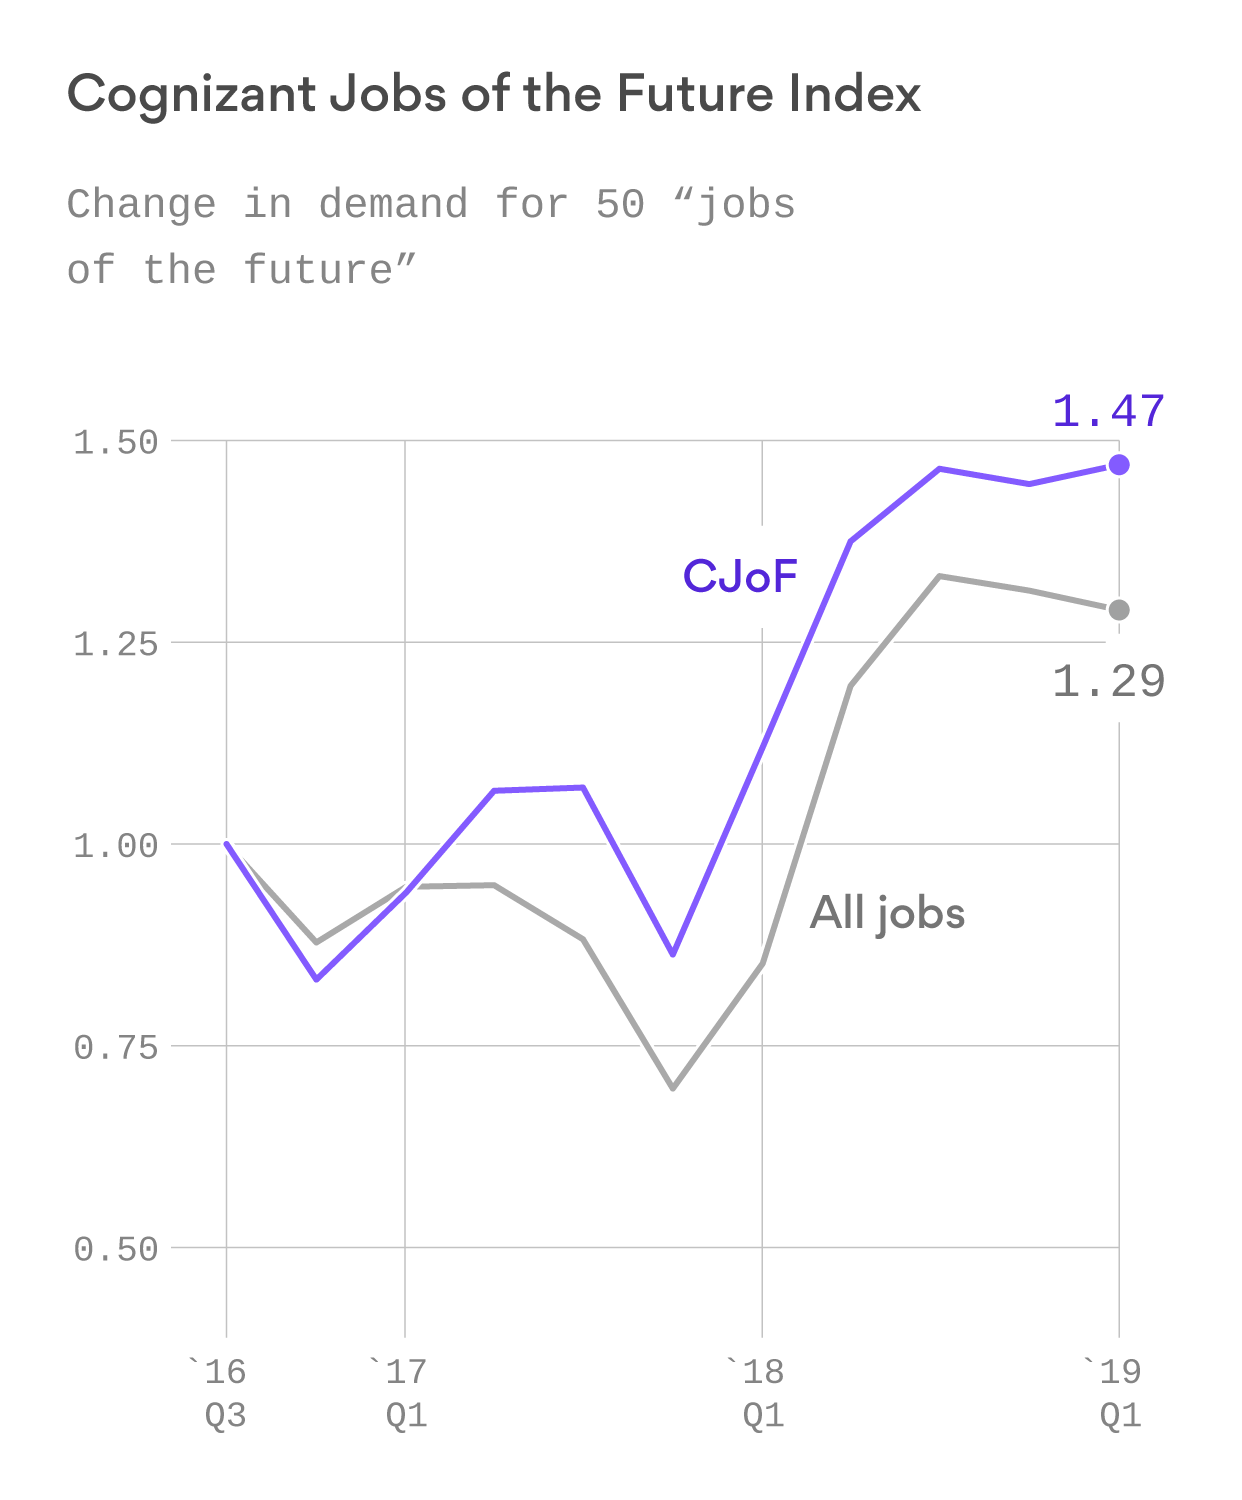 Jobs of the future slow with economic cooling